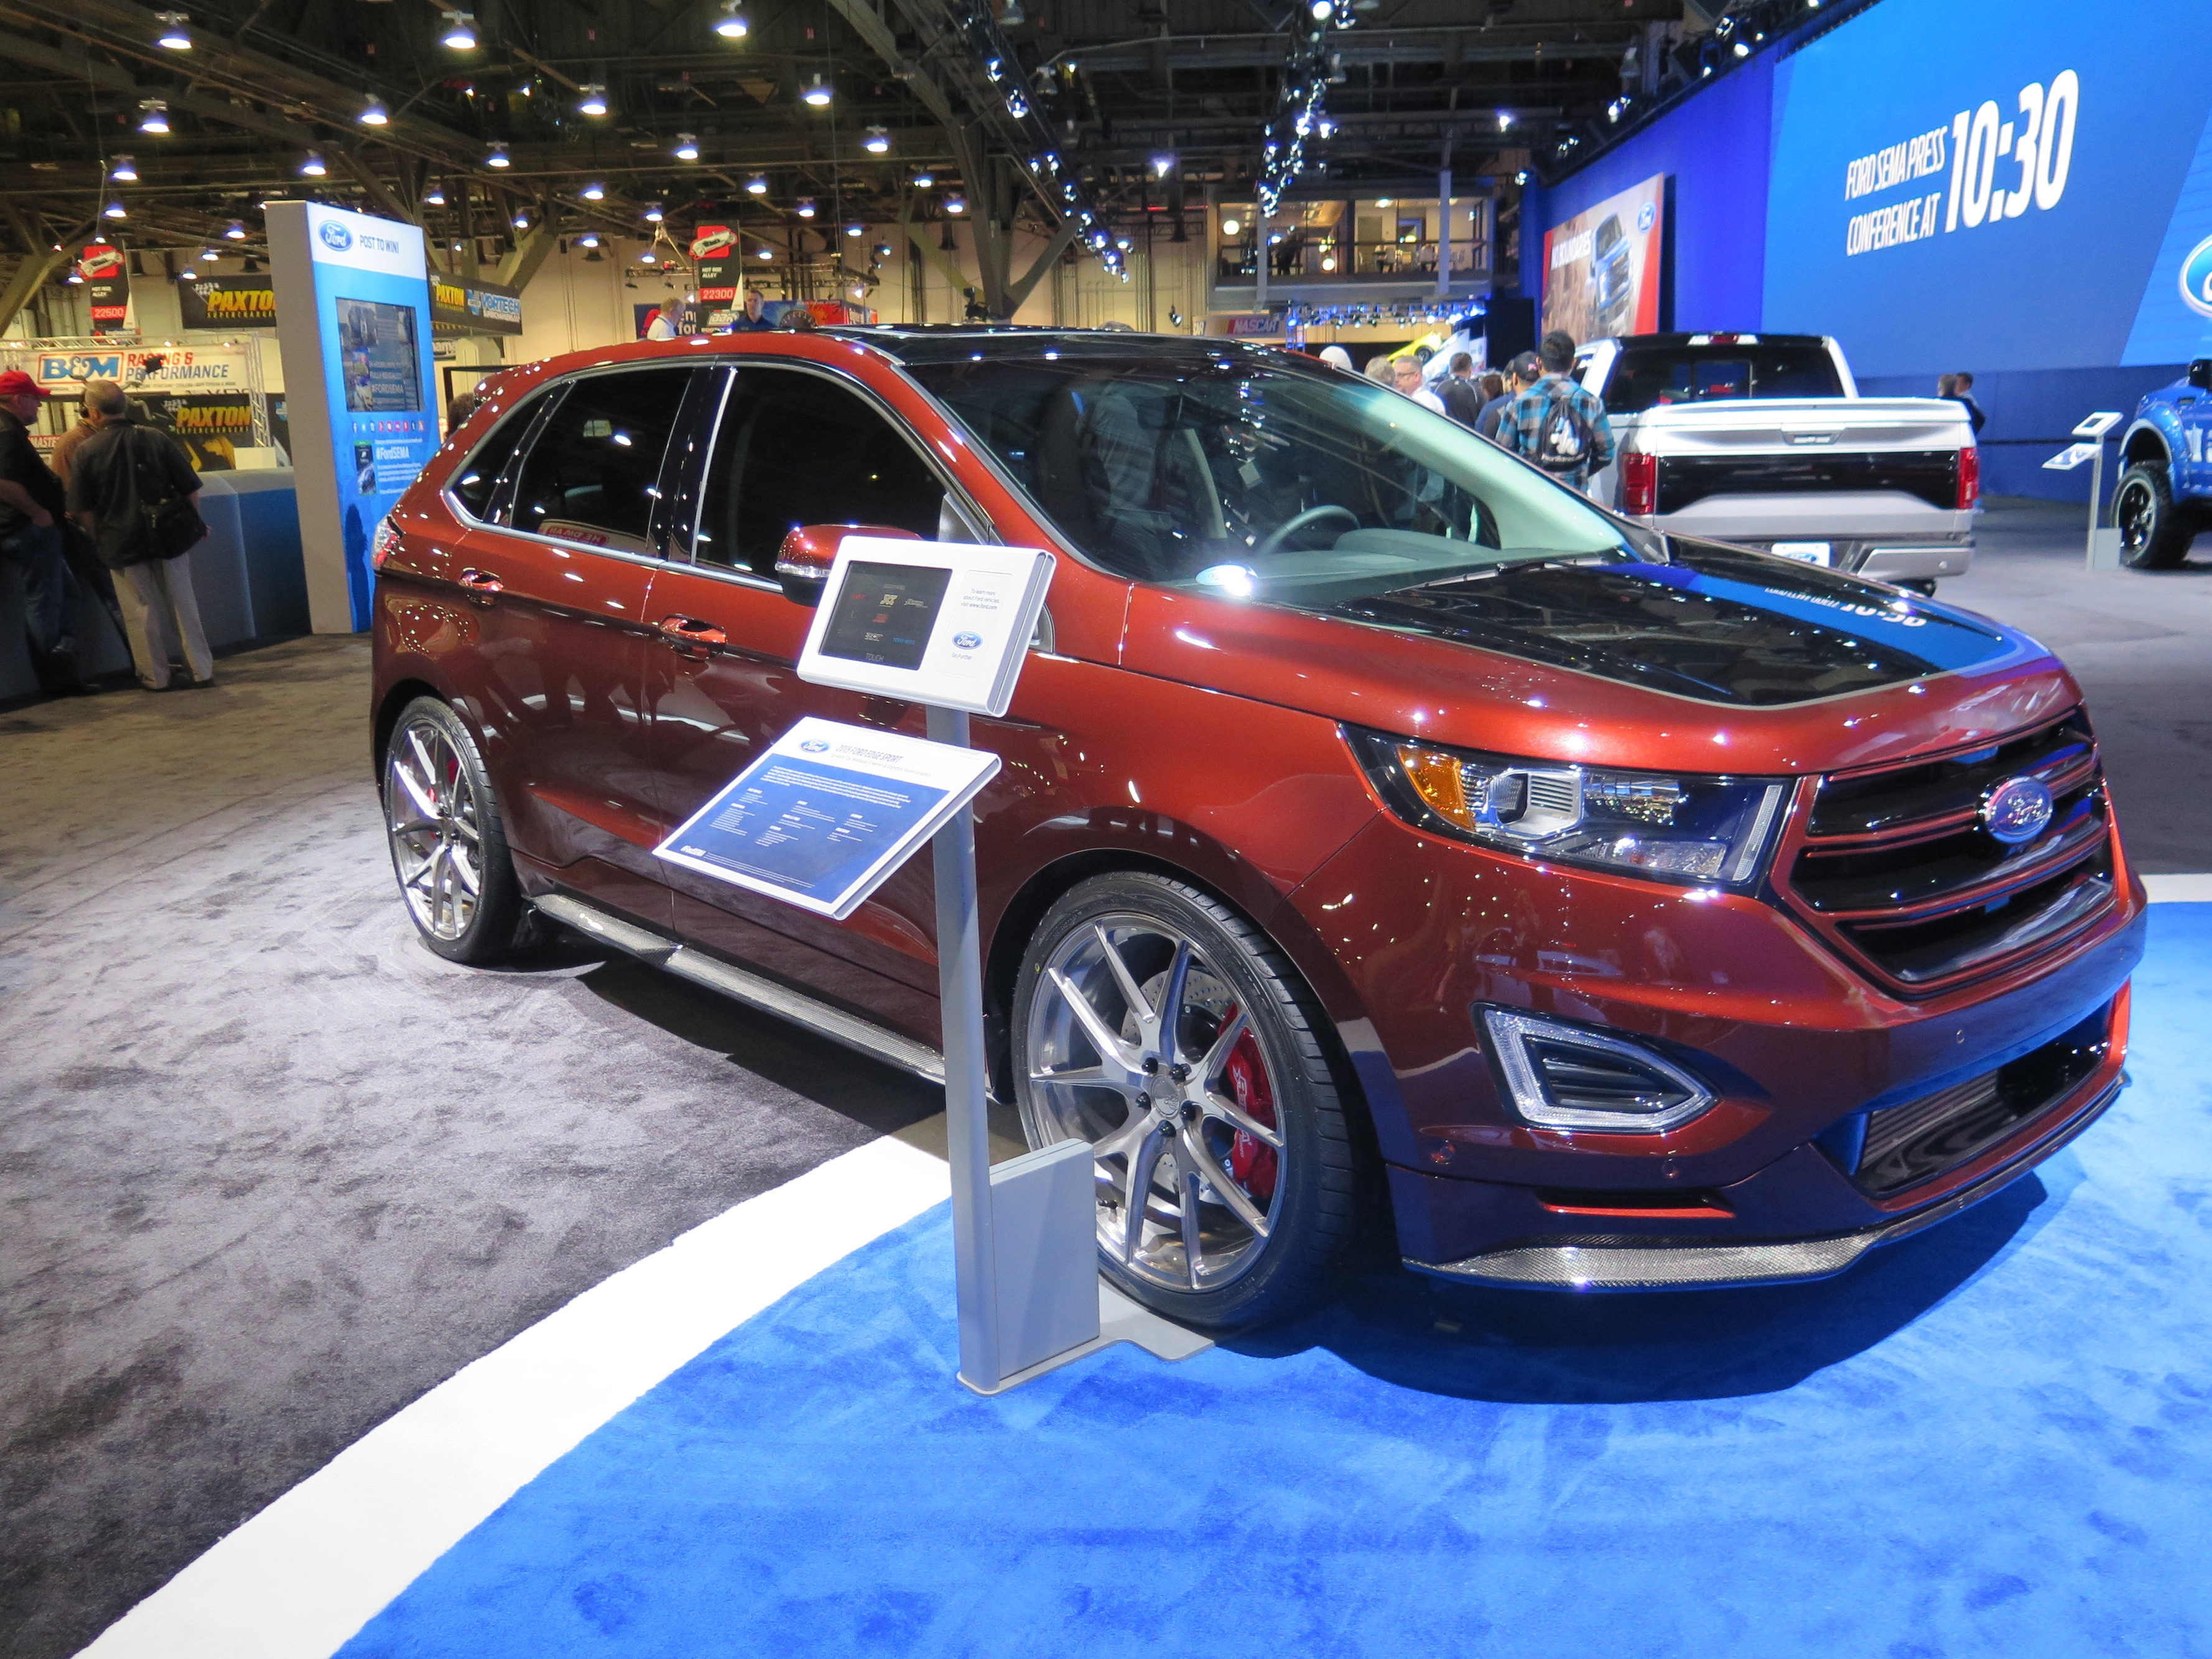 Both A Webasto Hollandia  Inbuilt Sunroof And A Webasto Thermo Top Evo Engine Pre Heater Were Installed In The Ford Edge Sport Nicknamed Ignition